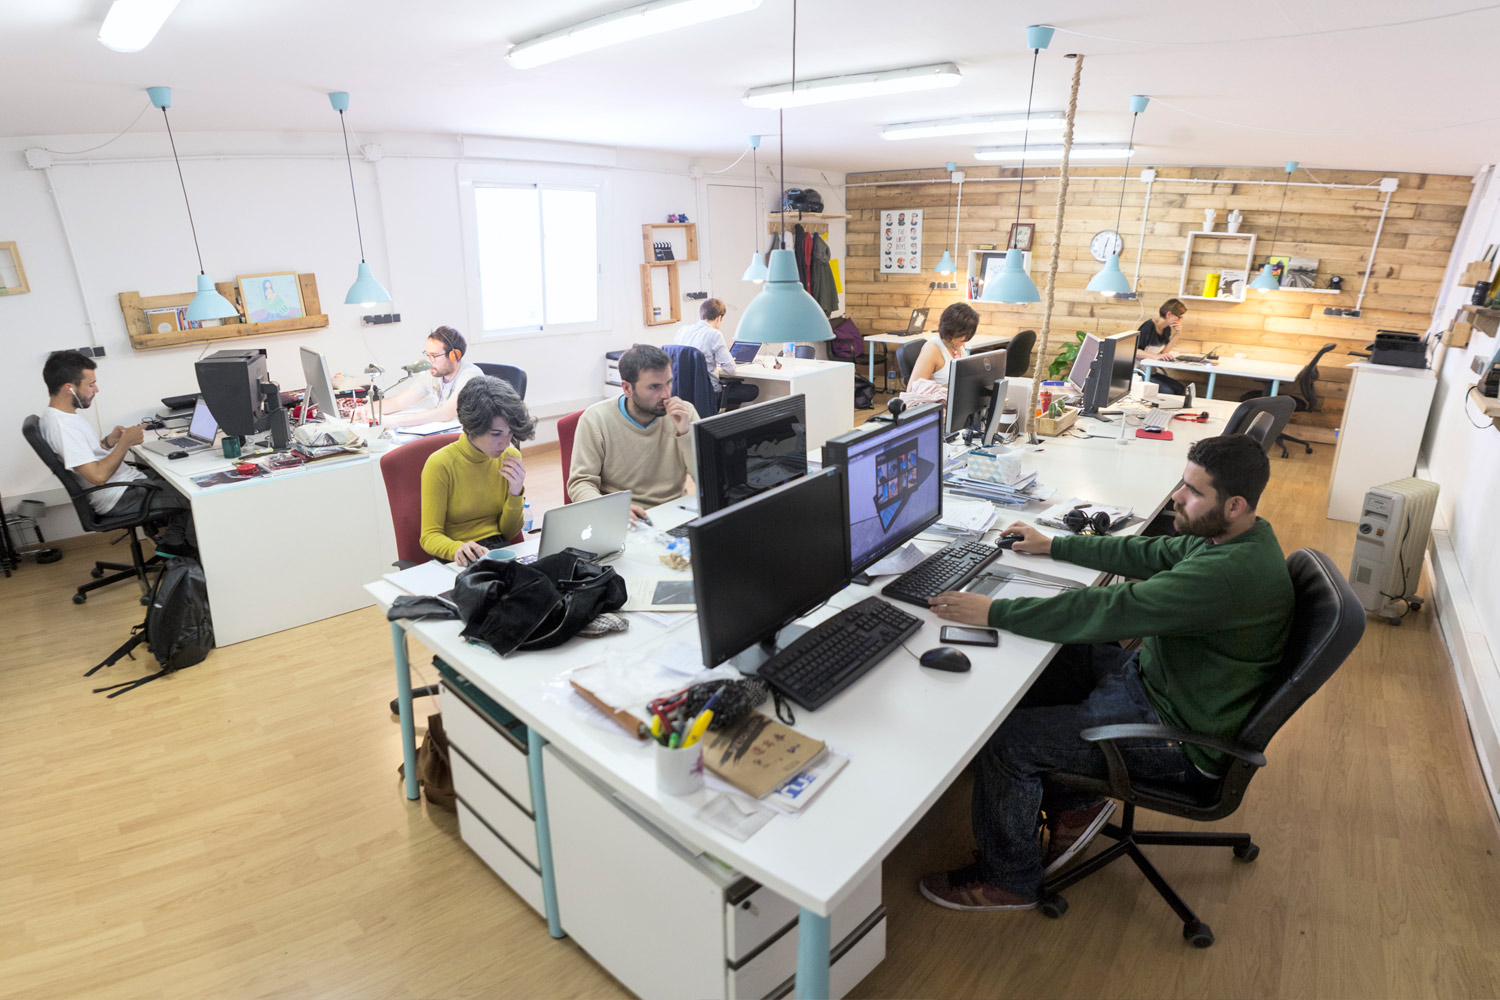 cadaver-exquisit-coworking-barcelona-5